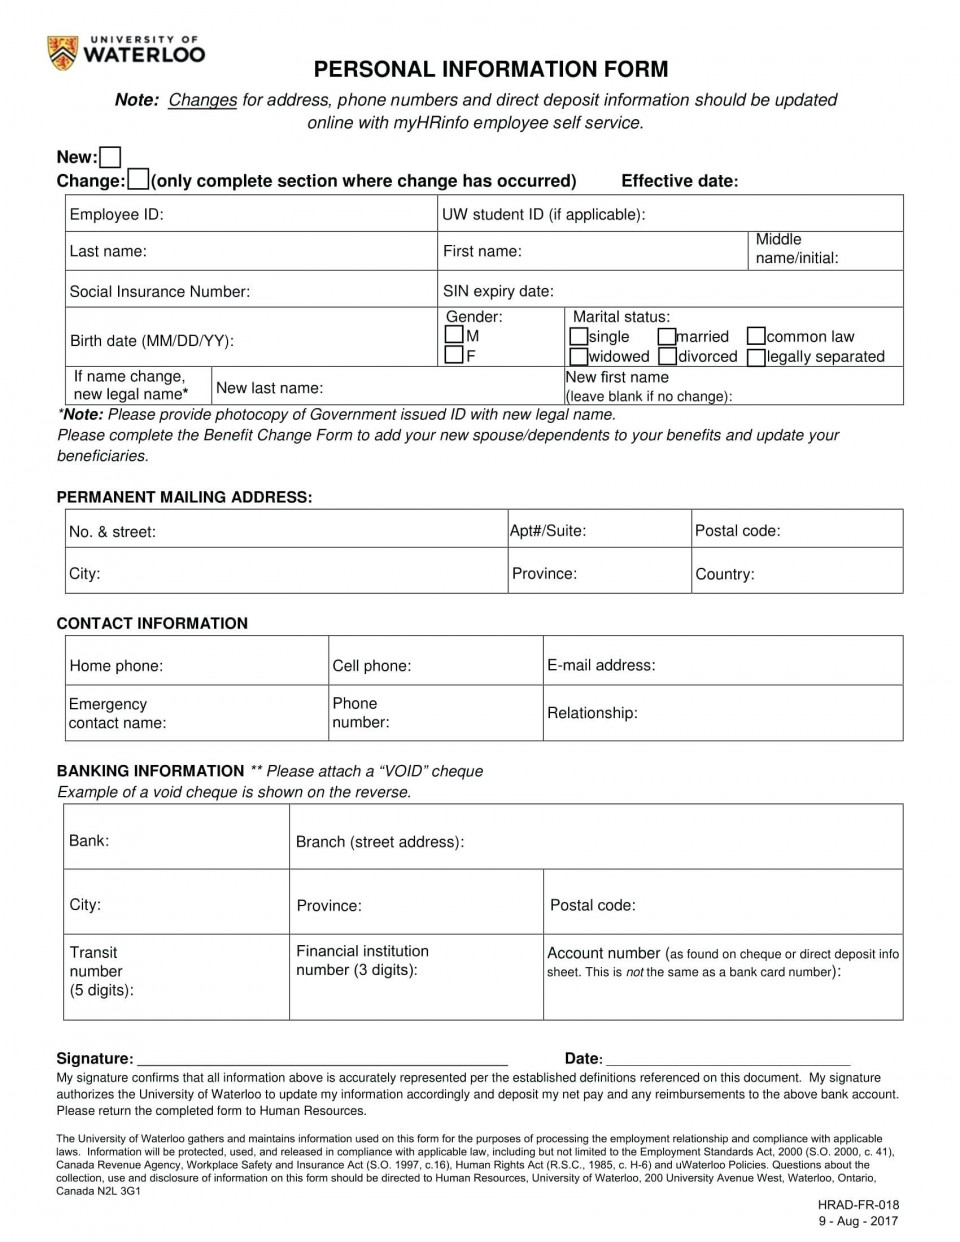 009 Excellent New Customer Account Application Form Template Idea  Busines Uk Opening960